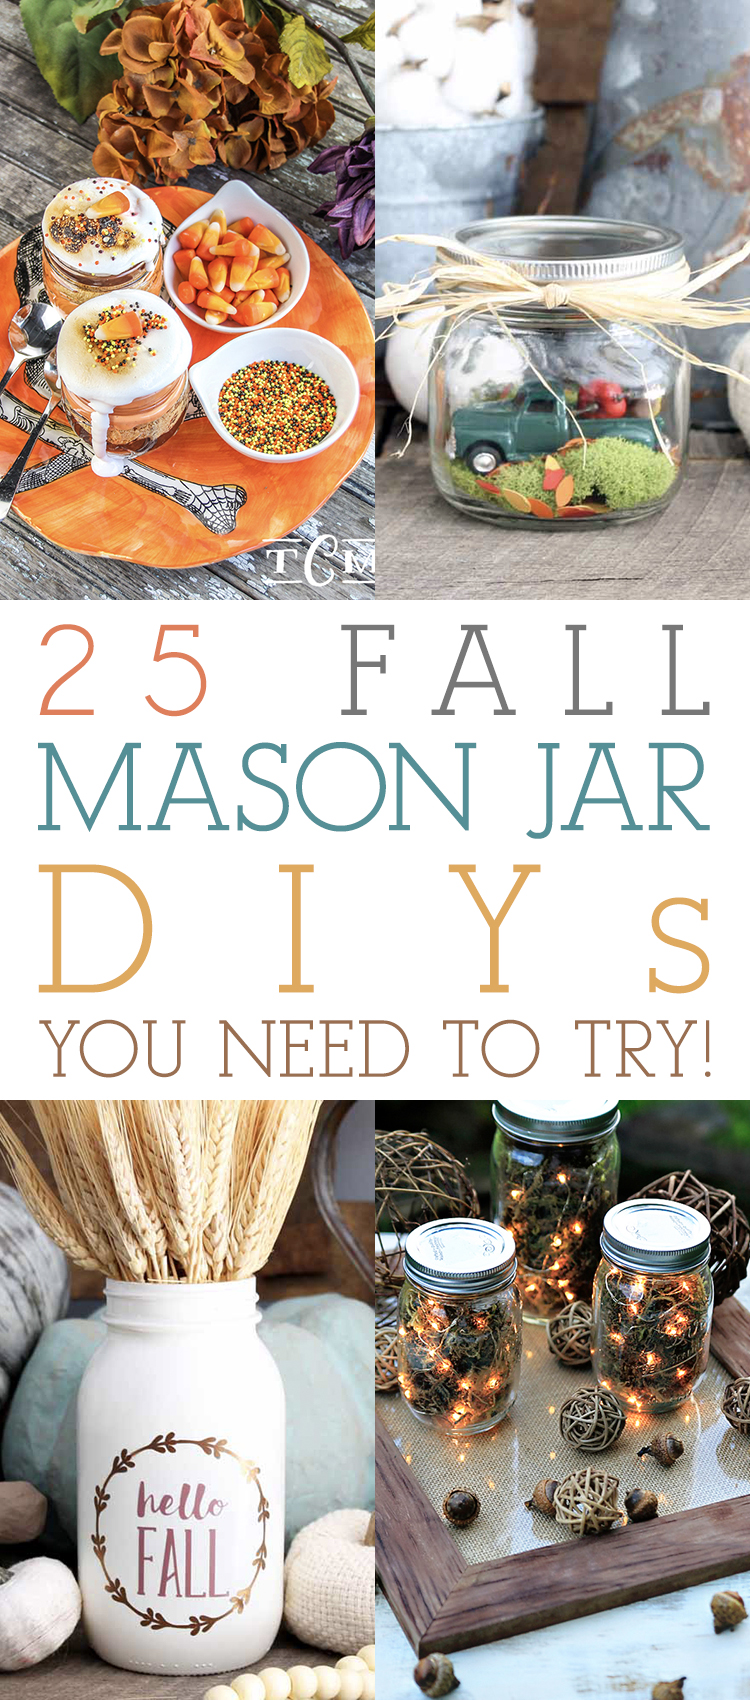 25 Fall Mason Jar DIYS You Need To Try The Cottage Market